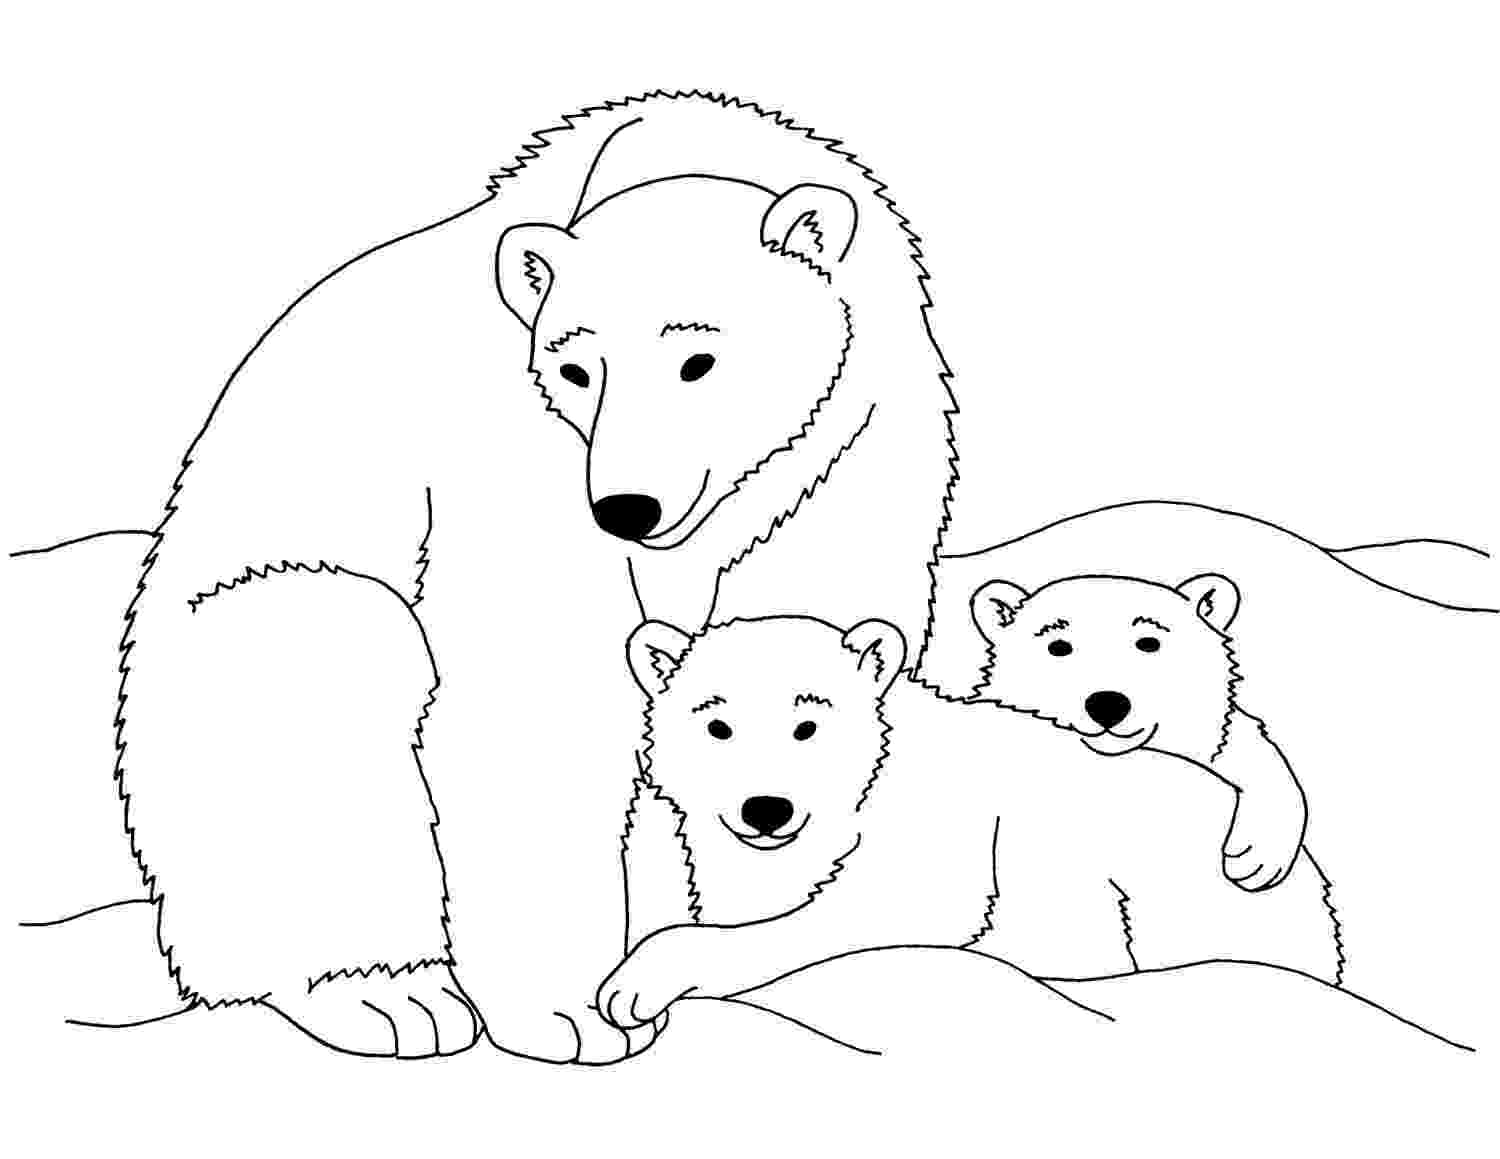 polar bear pictures to print free printable polar bear coloring pages for kids to pictures print bear polar